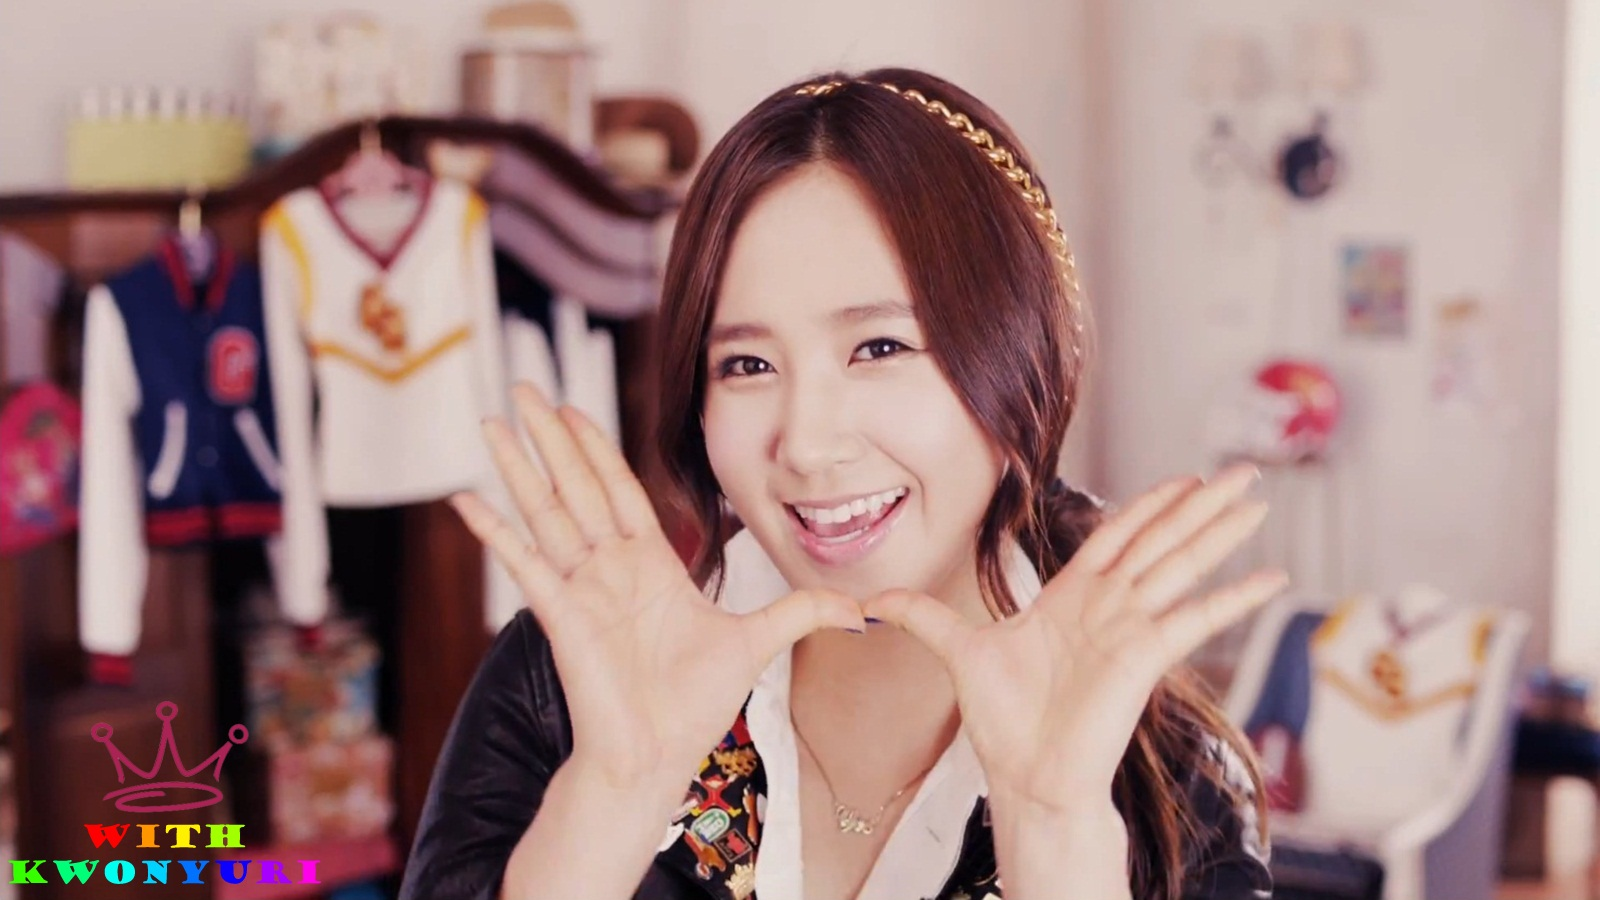 yuri snsd wallpaper 2013 - photo #24